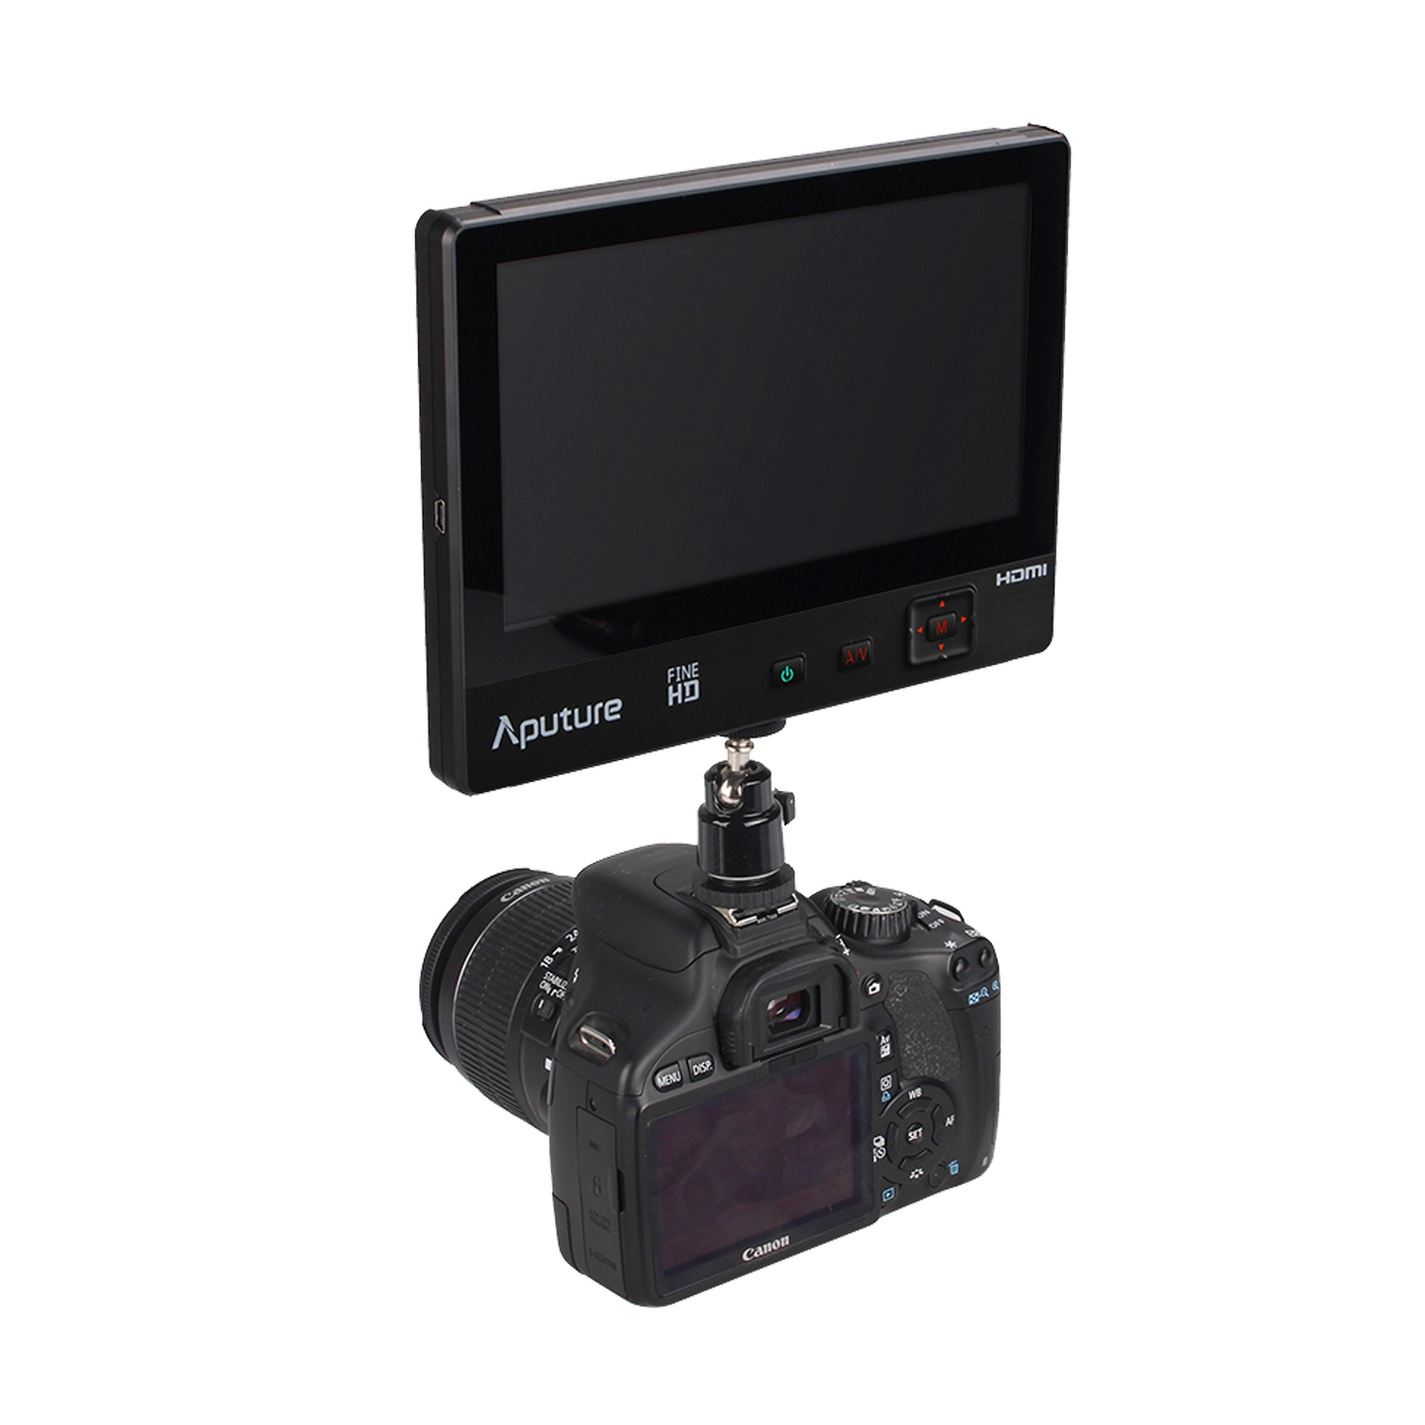 Aputure VS-1 FineHD digital 7 inch LCD Field video Monitor V-Screen VS-1 FineHD Field Monitor accepts HDMI AV for DSLR Camcorder чернышов с и поехали русский язык для взрослых начальный курс 10 е изд cd